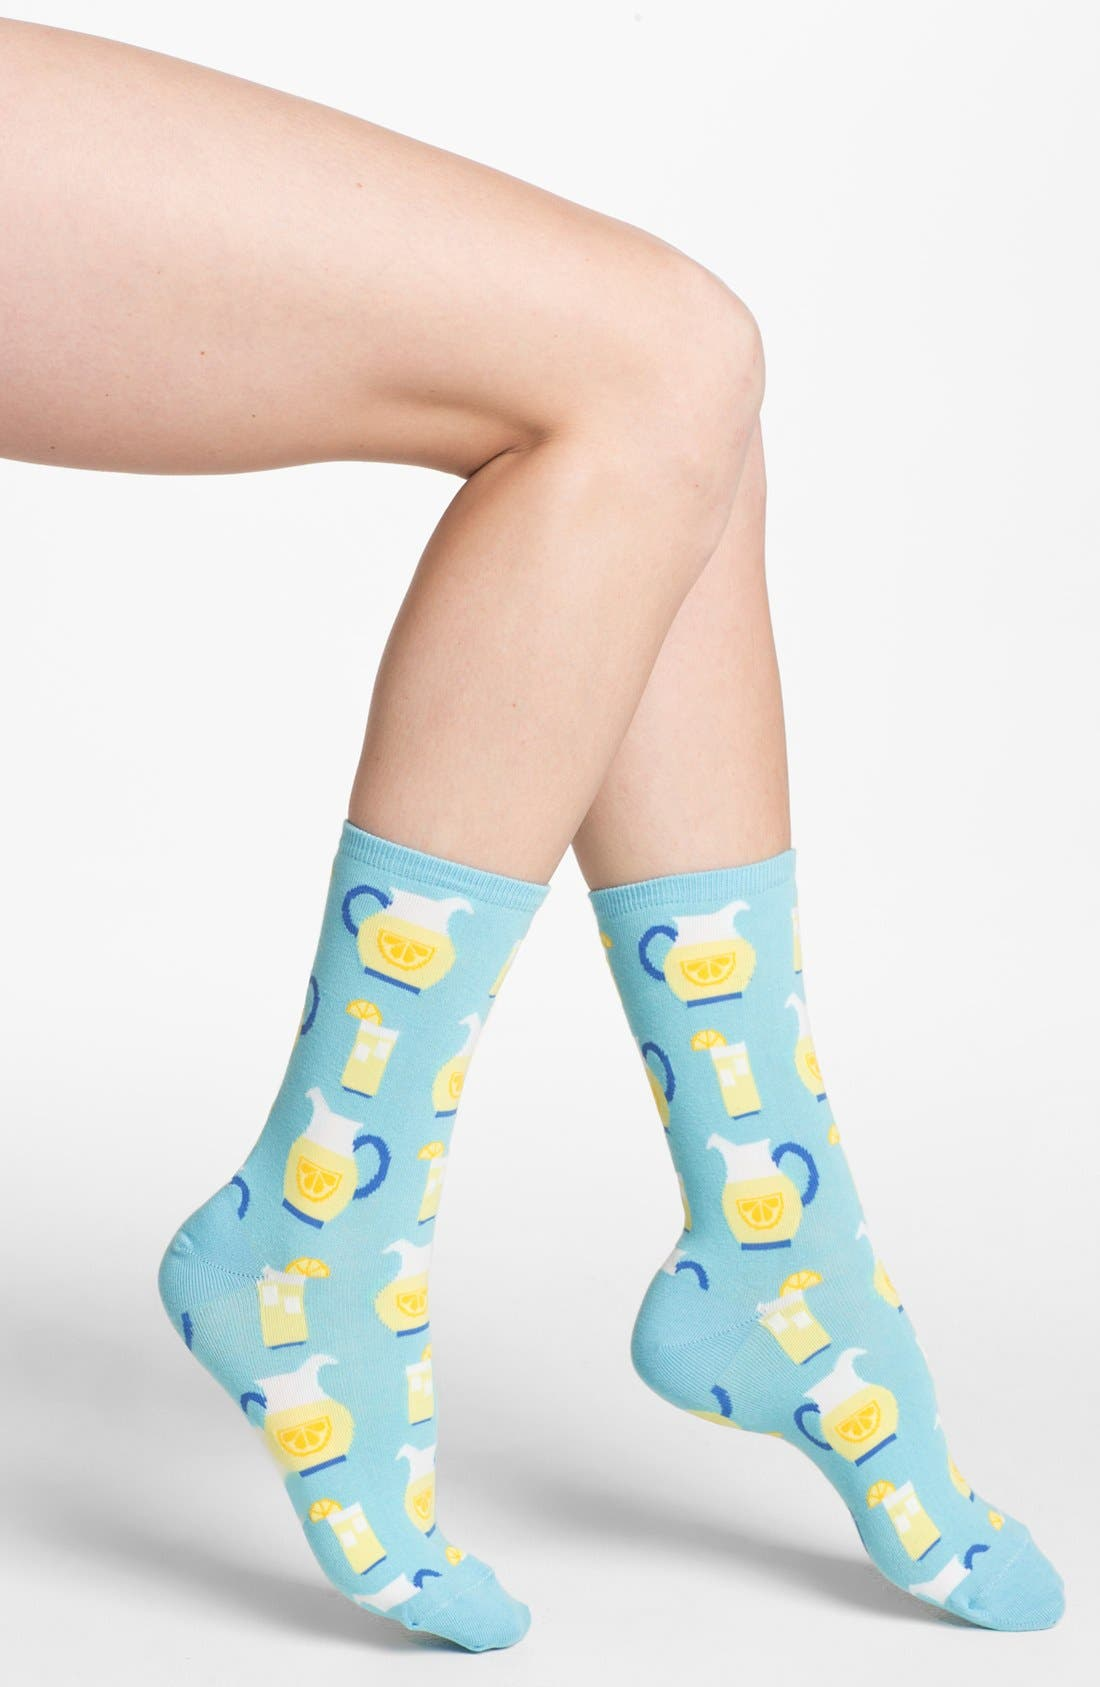 Alternate Image 1 Selected - Hot Sox 'Lemonade' Socks